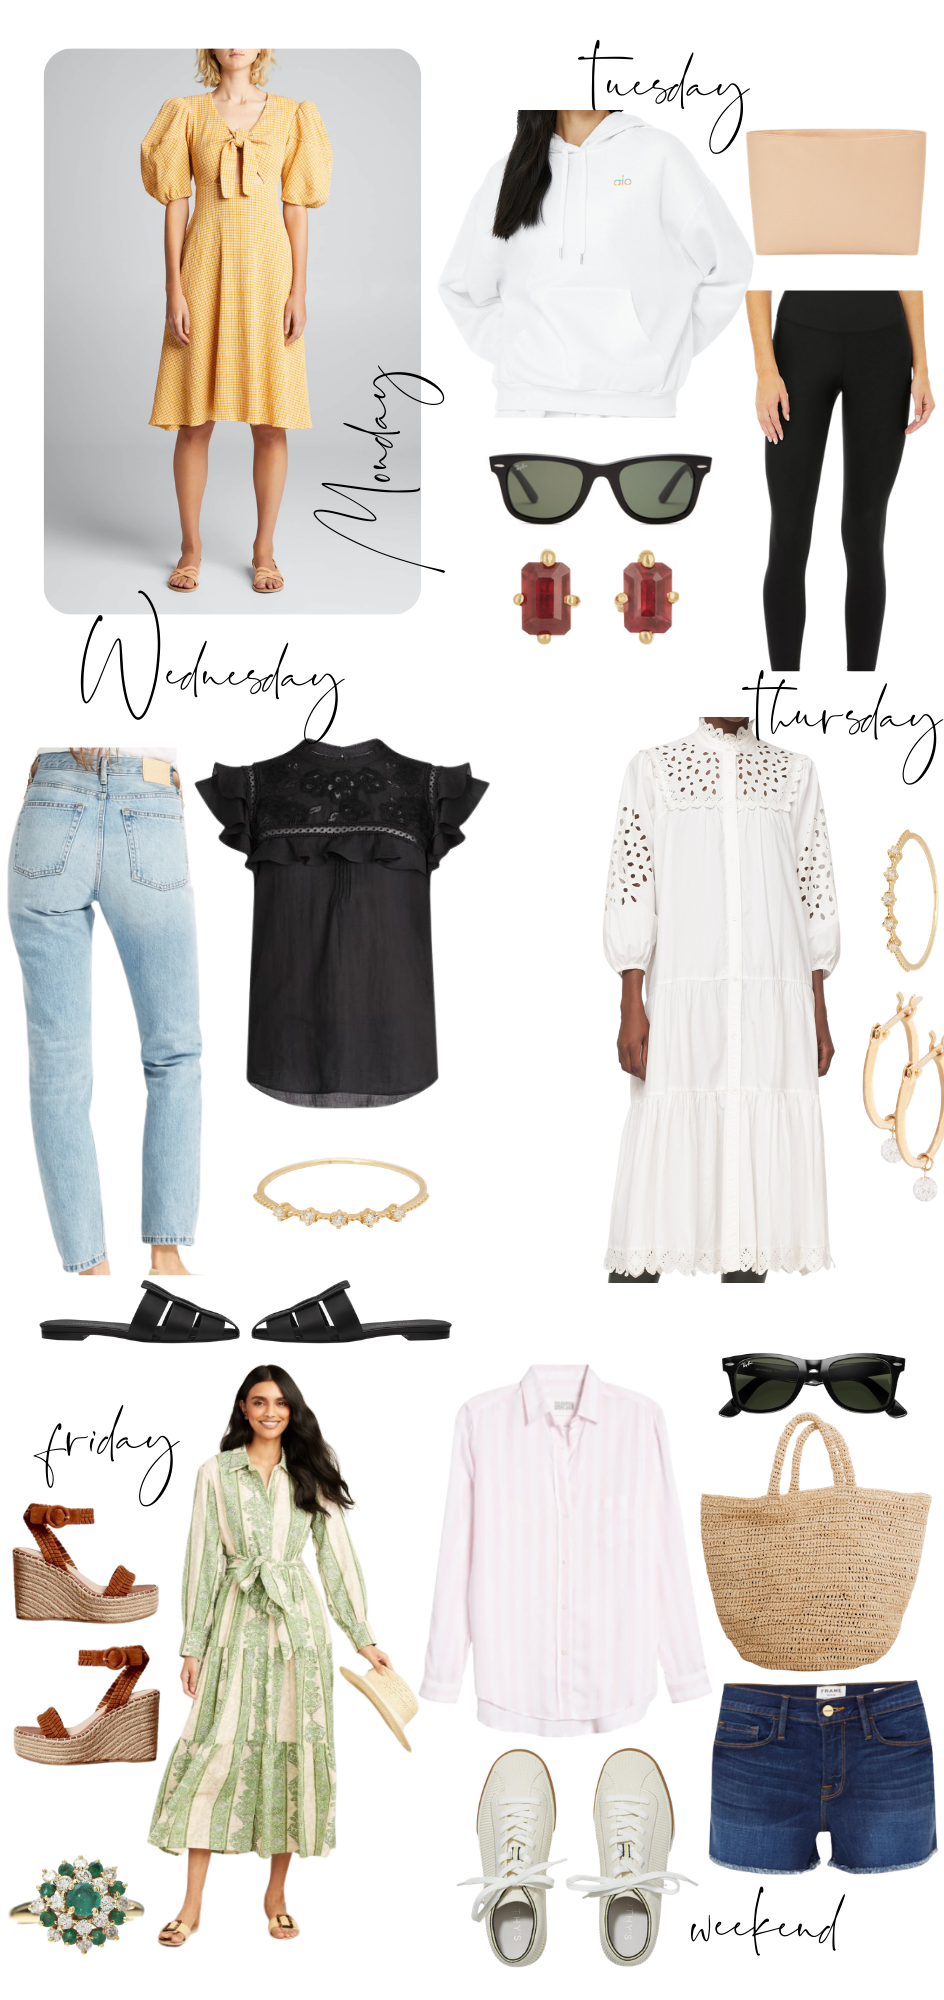 Summer Outfit Ideas by popular Monterey fashion blog, Haute Beauty Guide: collage image of a white hoodie sweatshirt, black leggings, tube top, red gem earrings, black Fram sunglasses, white eyelet dress, yellow puff sleeve dress, black eyelet flutter sleeve top, light wash high waist jean, gold hoop earrings, gold ring, black slide close toe sandals, woven tote bag, pink and white stripe shirt, denim shorts, white sneakers, brown strap espadrilles, emerald ring, and cream and white stripe tie waist maxi dress.